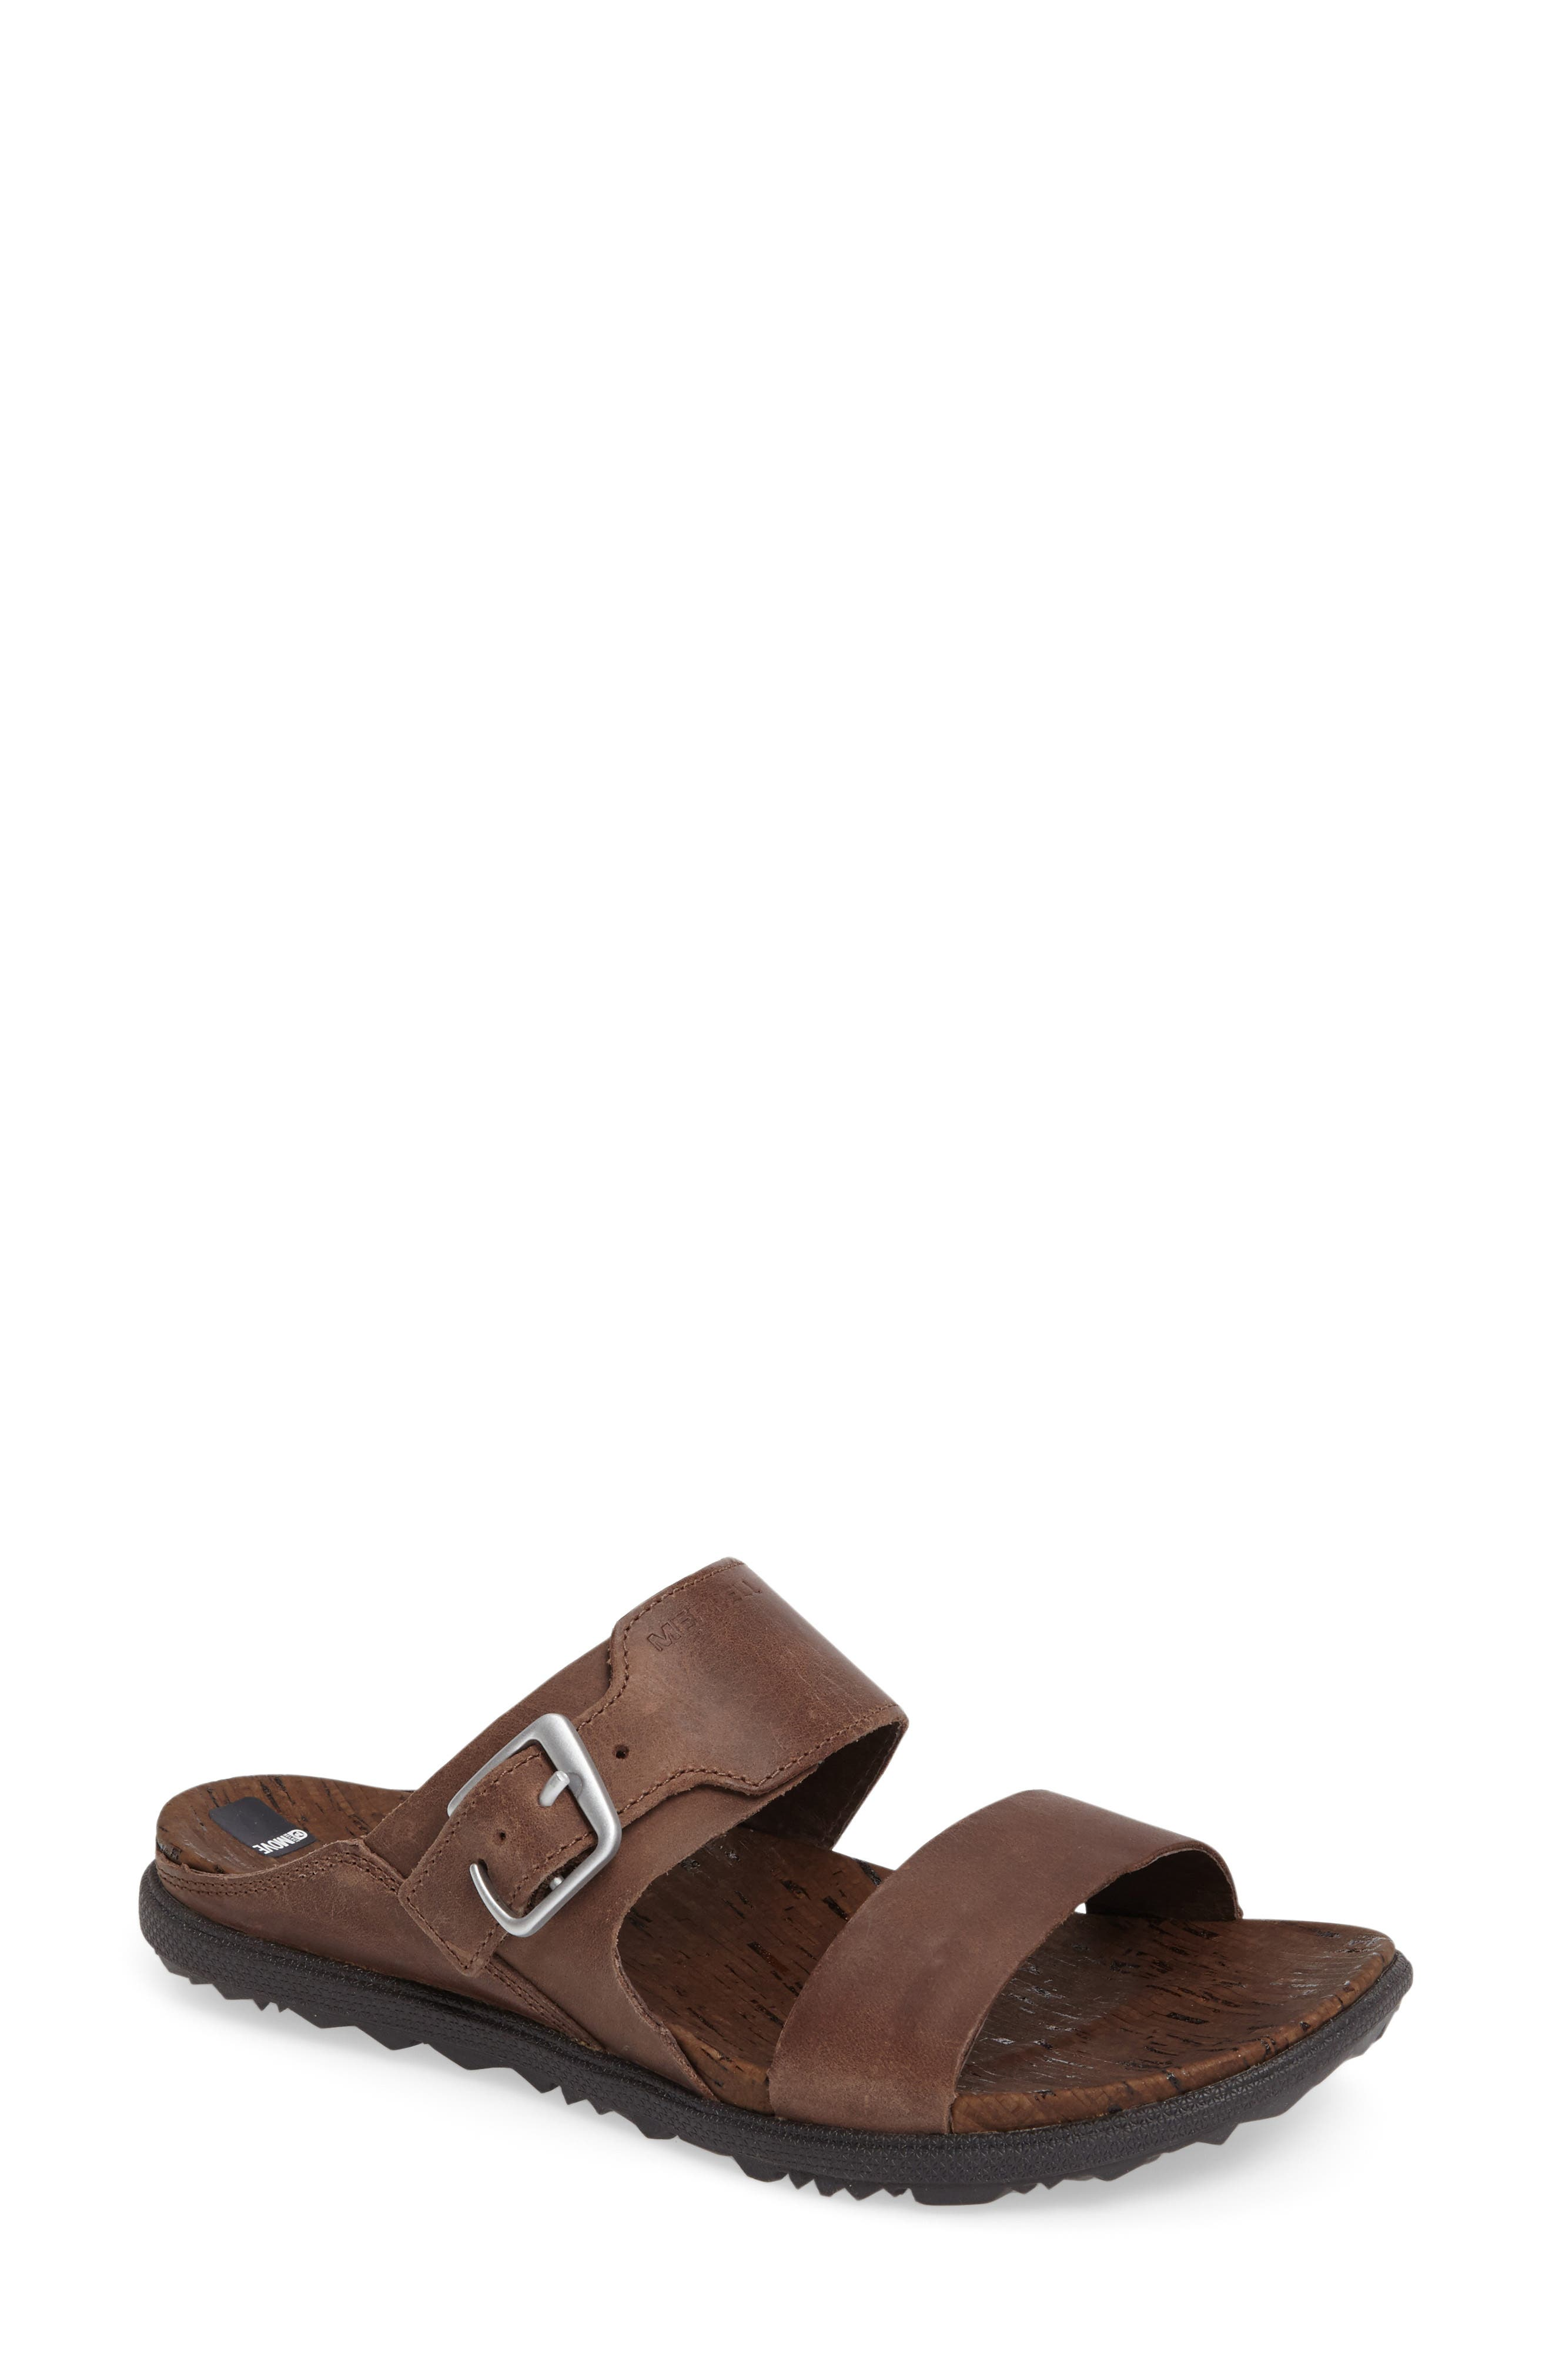 Around Town Slide Sandal,                         Main,                         color, Brown Leather